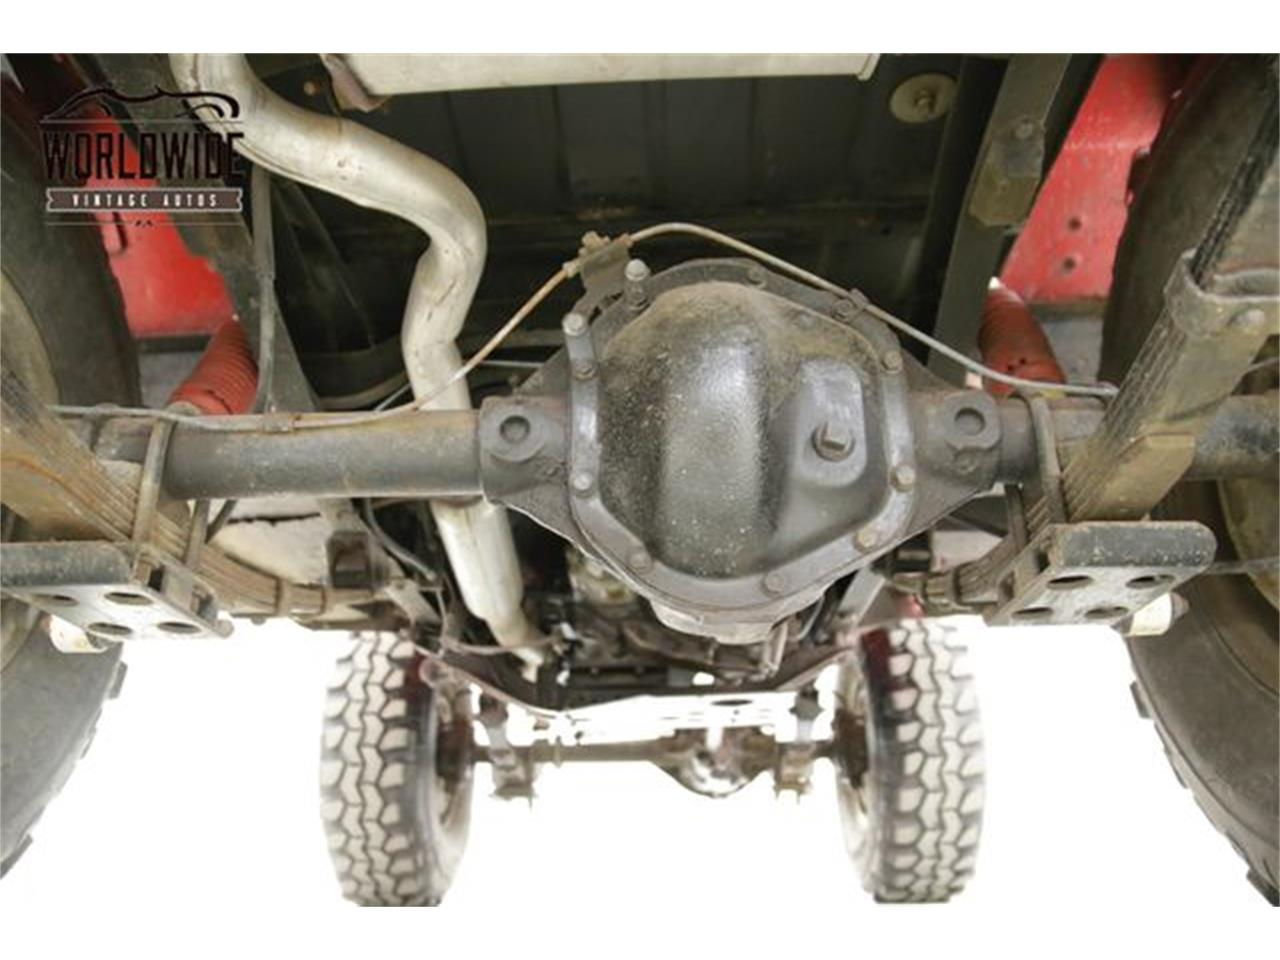 Large Picture of '62 Willys Jeep - $12,900.00 - PSGE